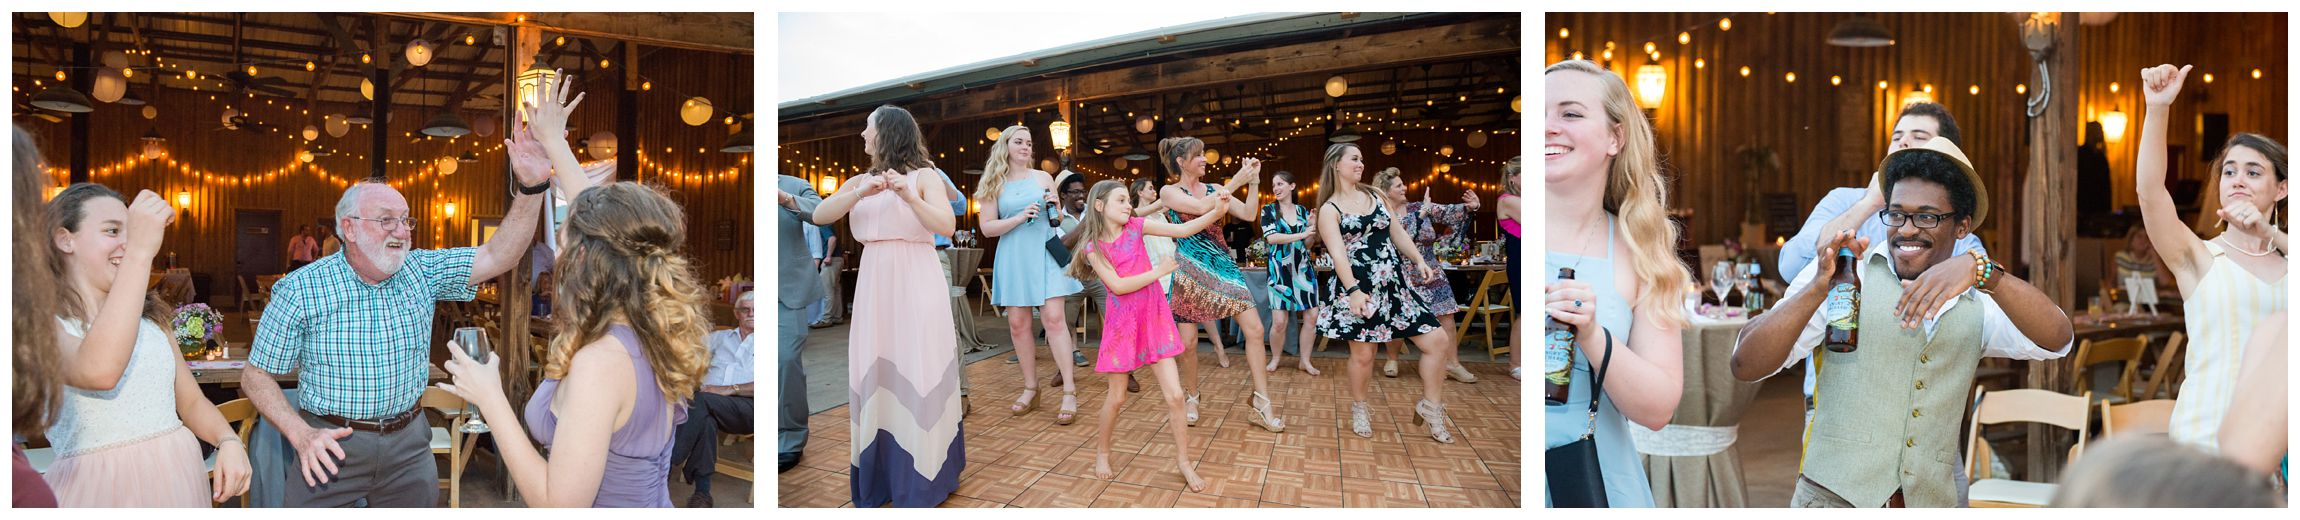 guests dancing at wedding reception in barn at Wolftrap Farm